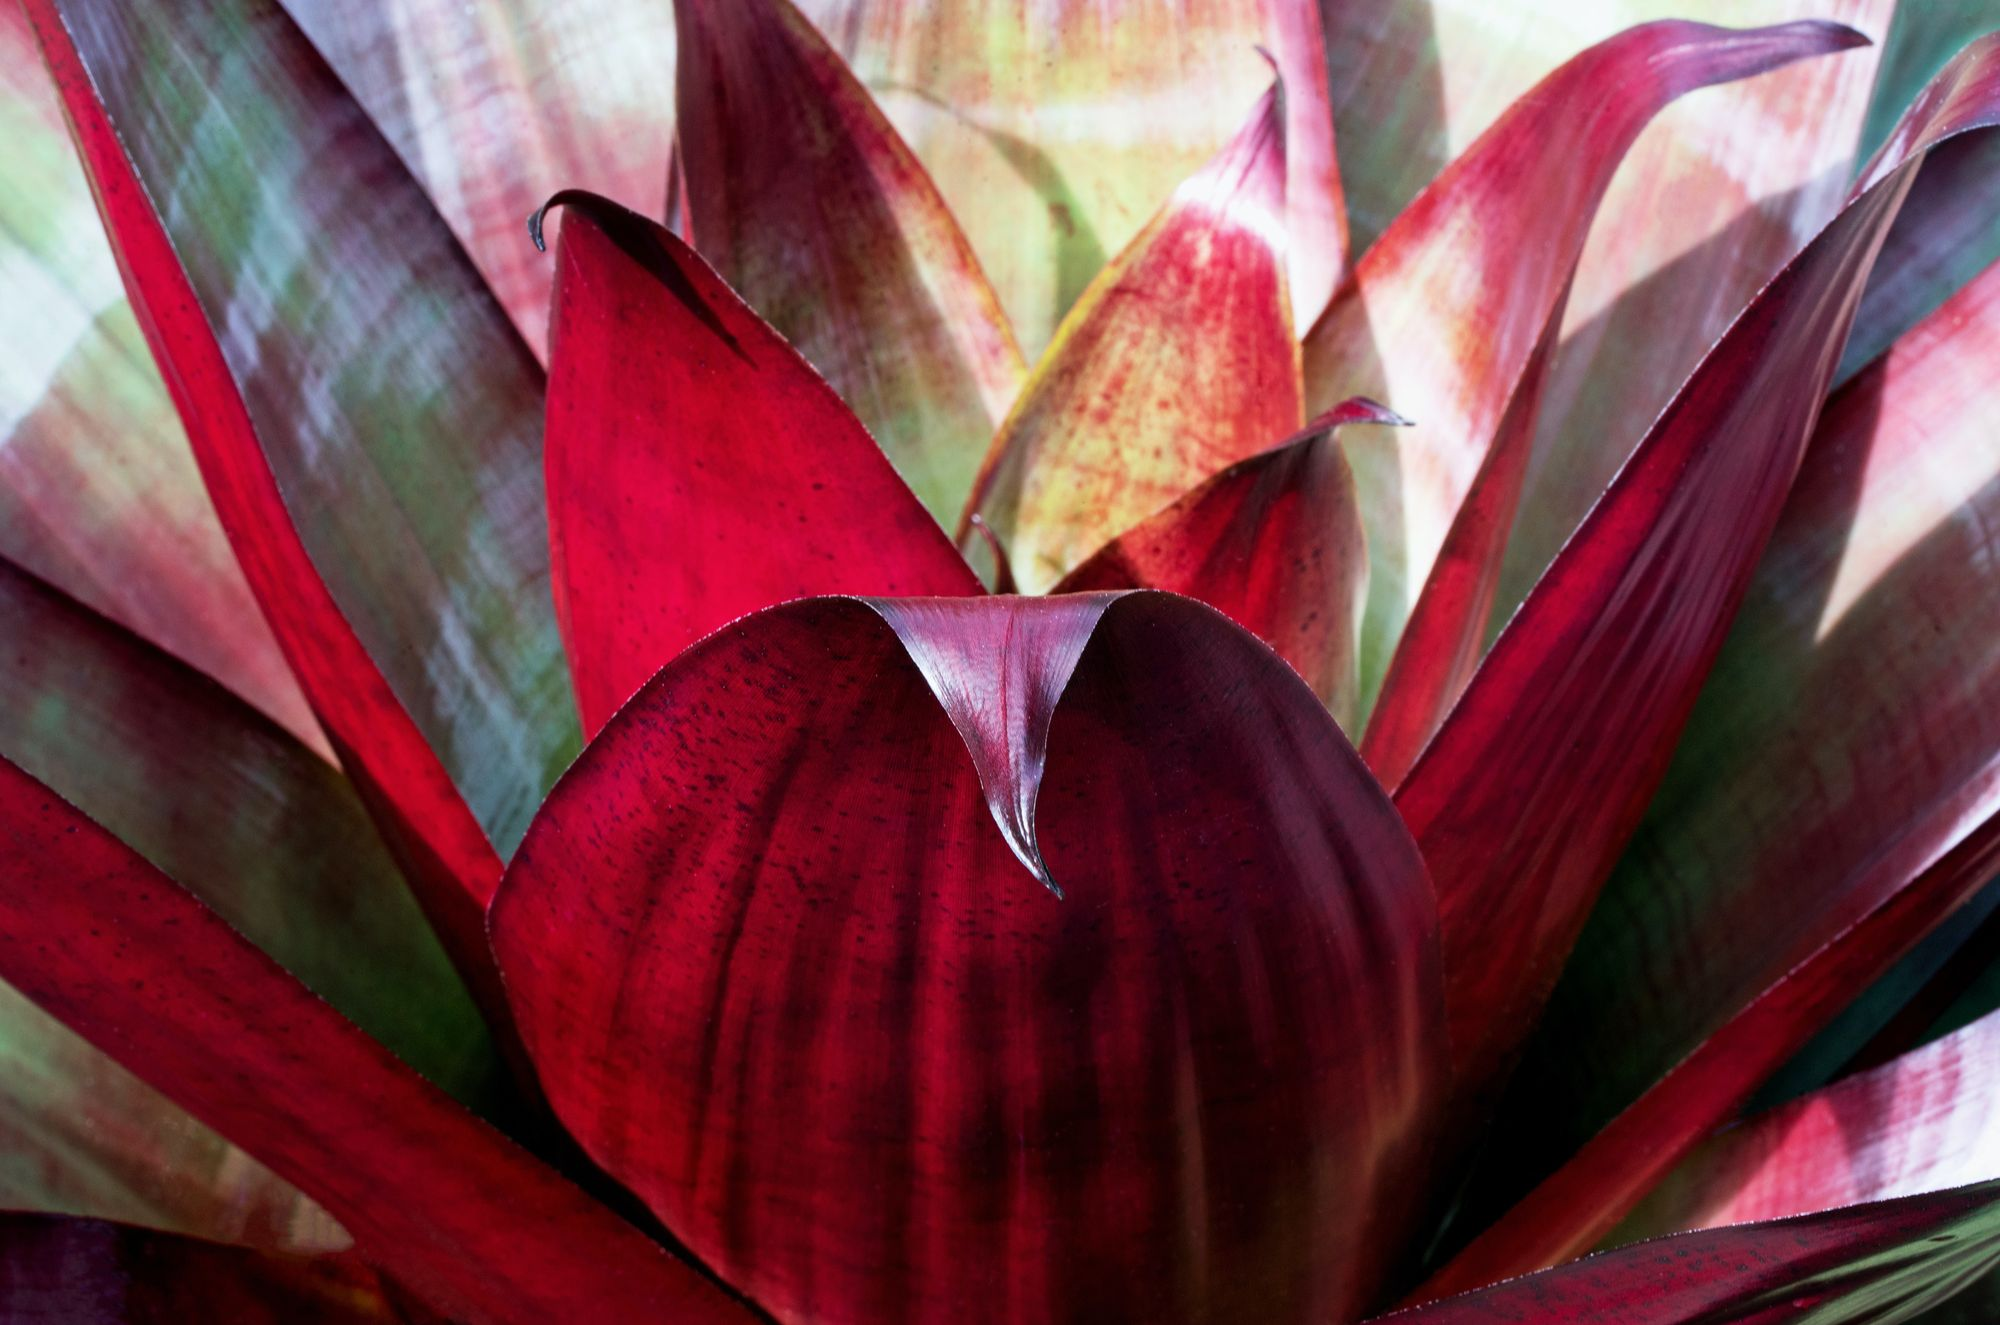 A close-up photo of the large bromeliad plant